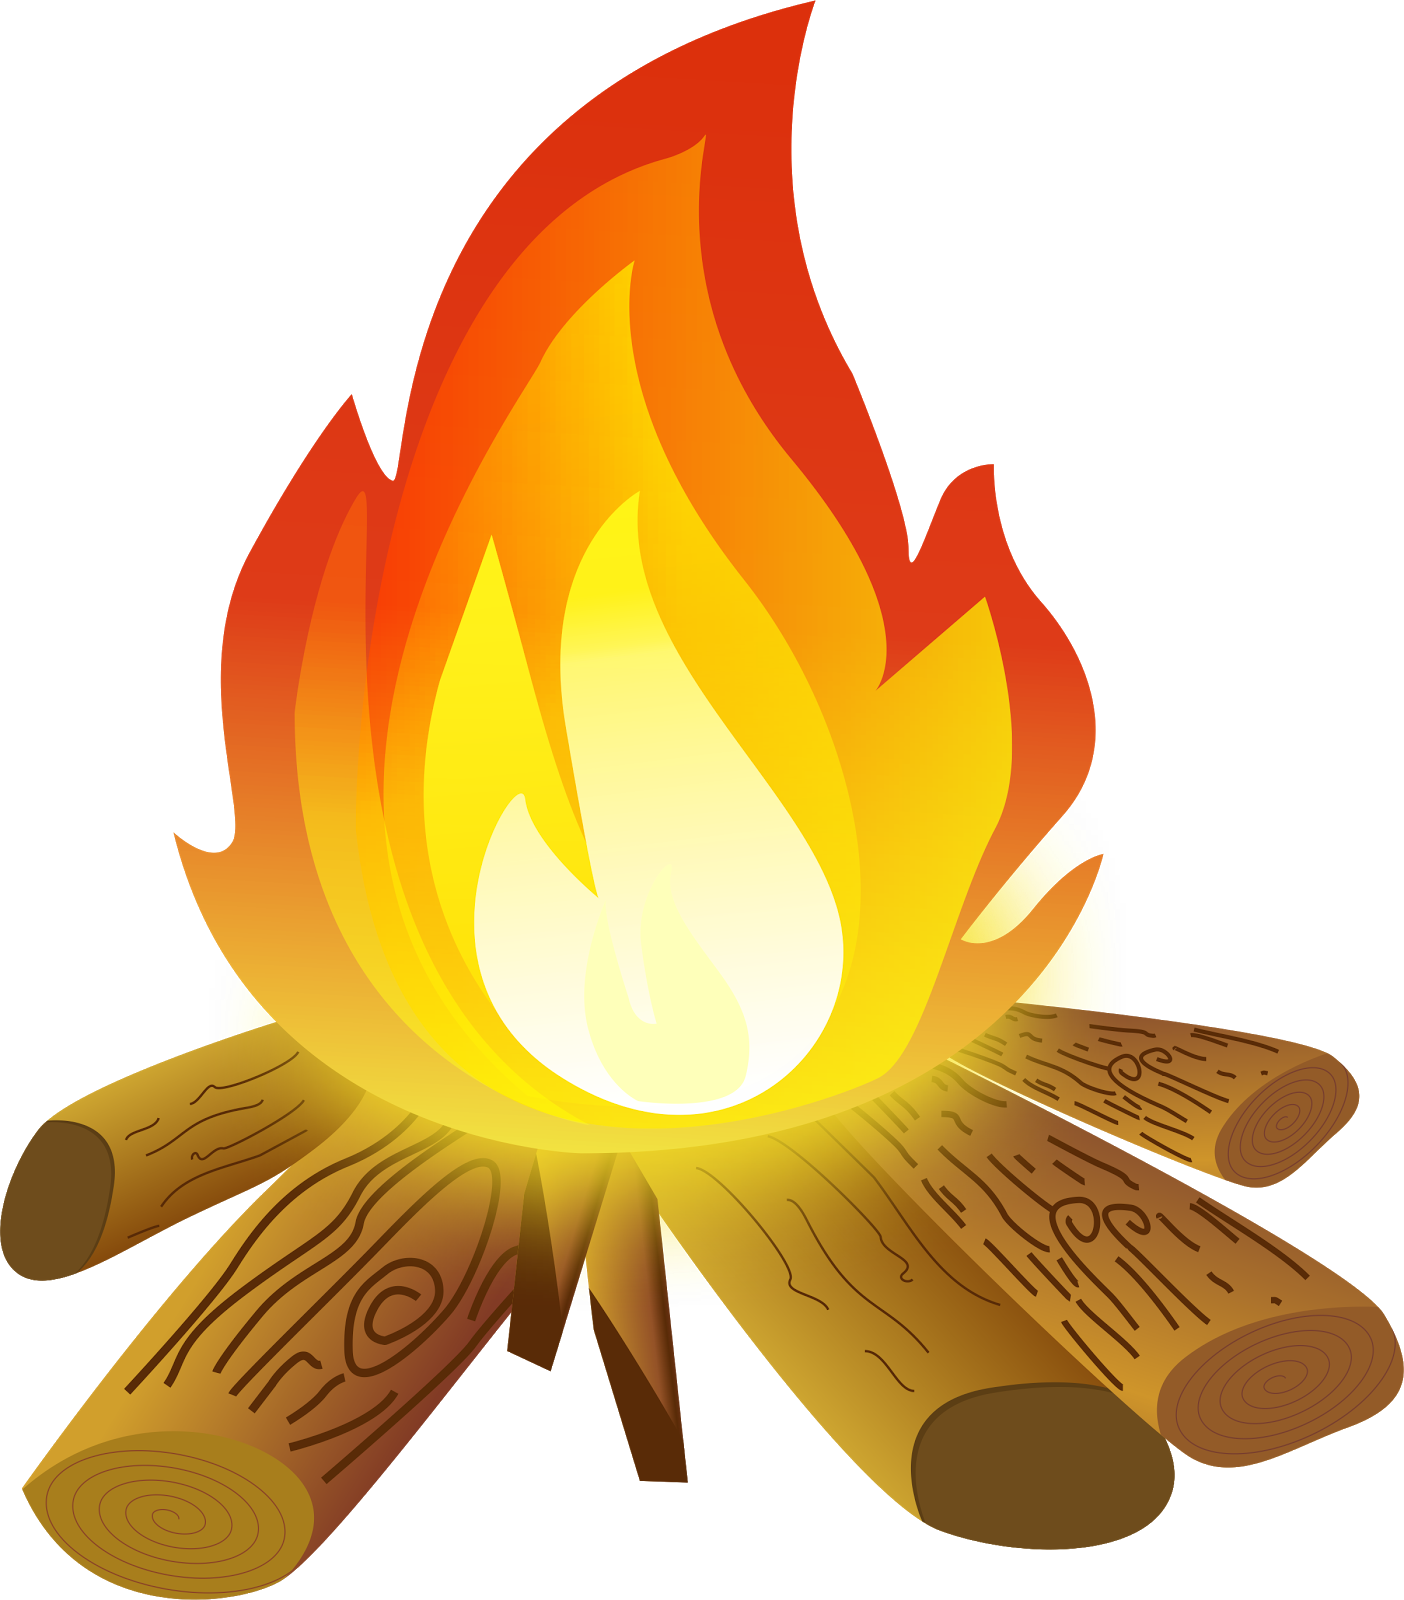 Bonfire fire, fire, bonfire, flame png image and clipart.